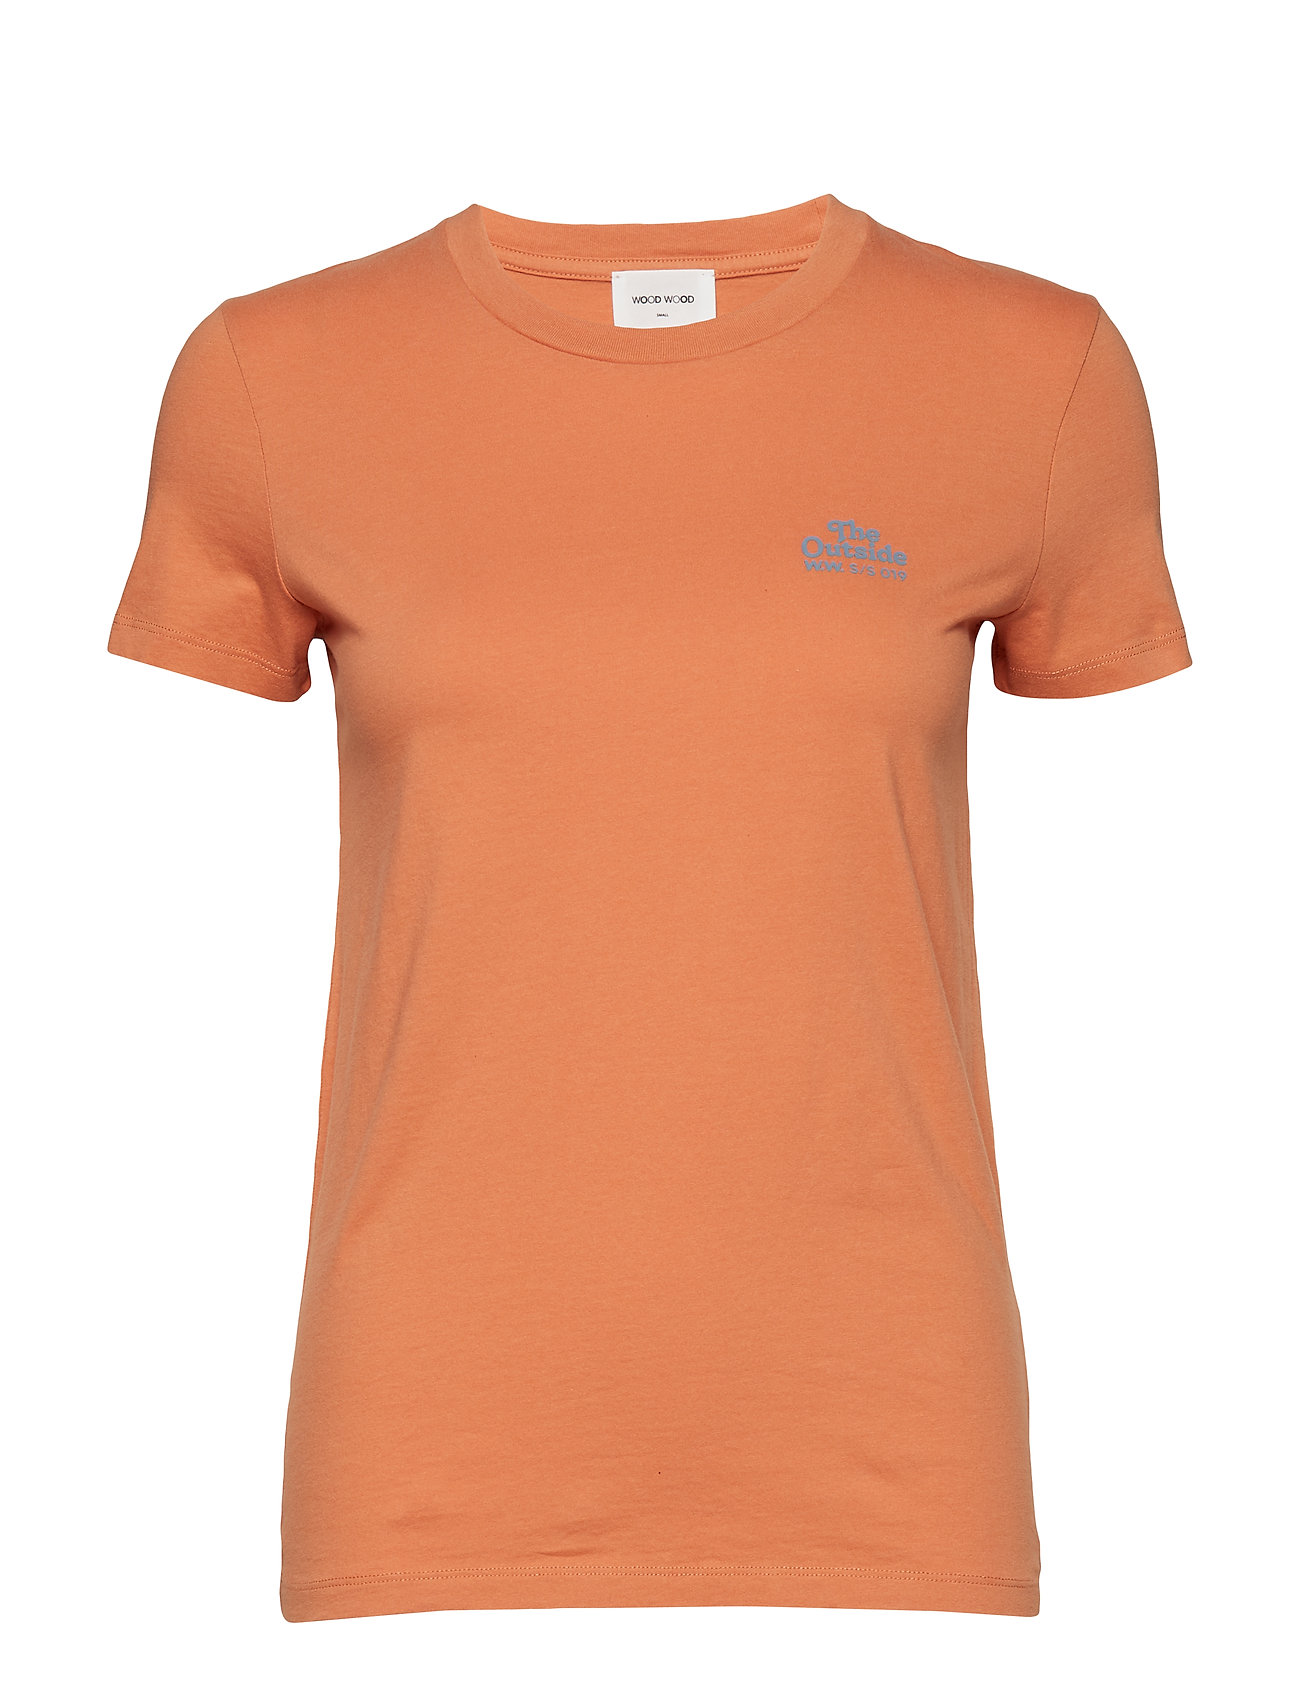 Wood Wood Eden T-shirt - DUSTY ORANGE